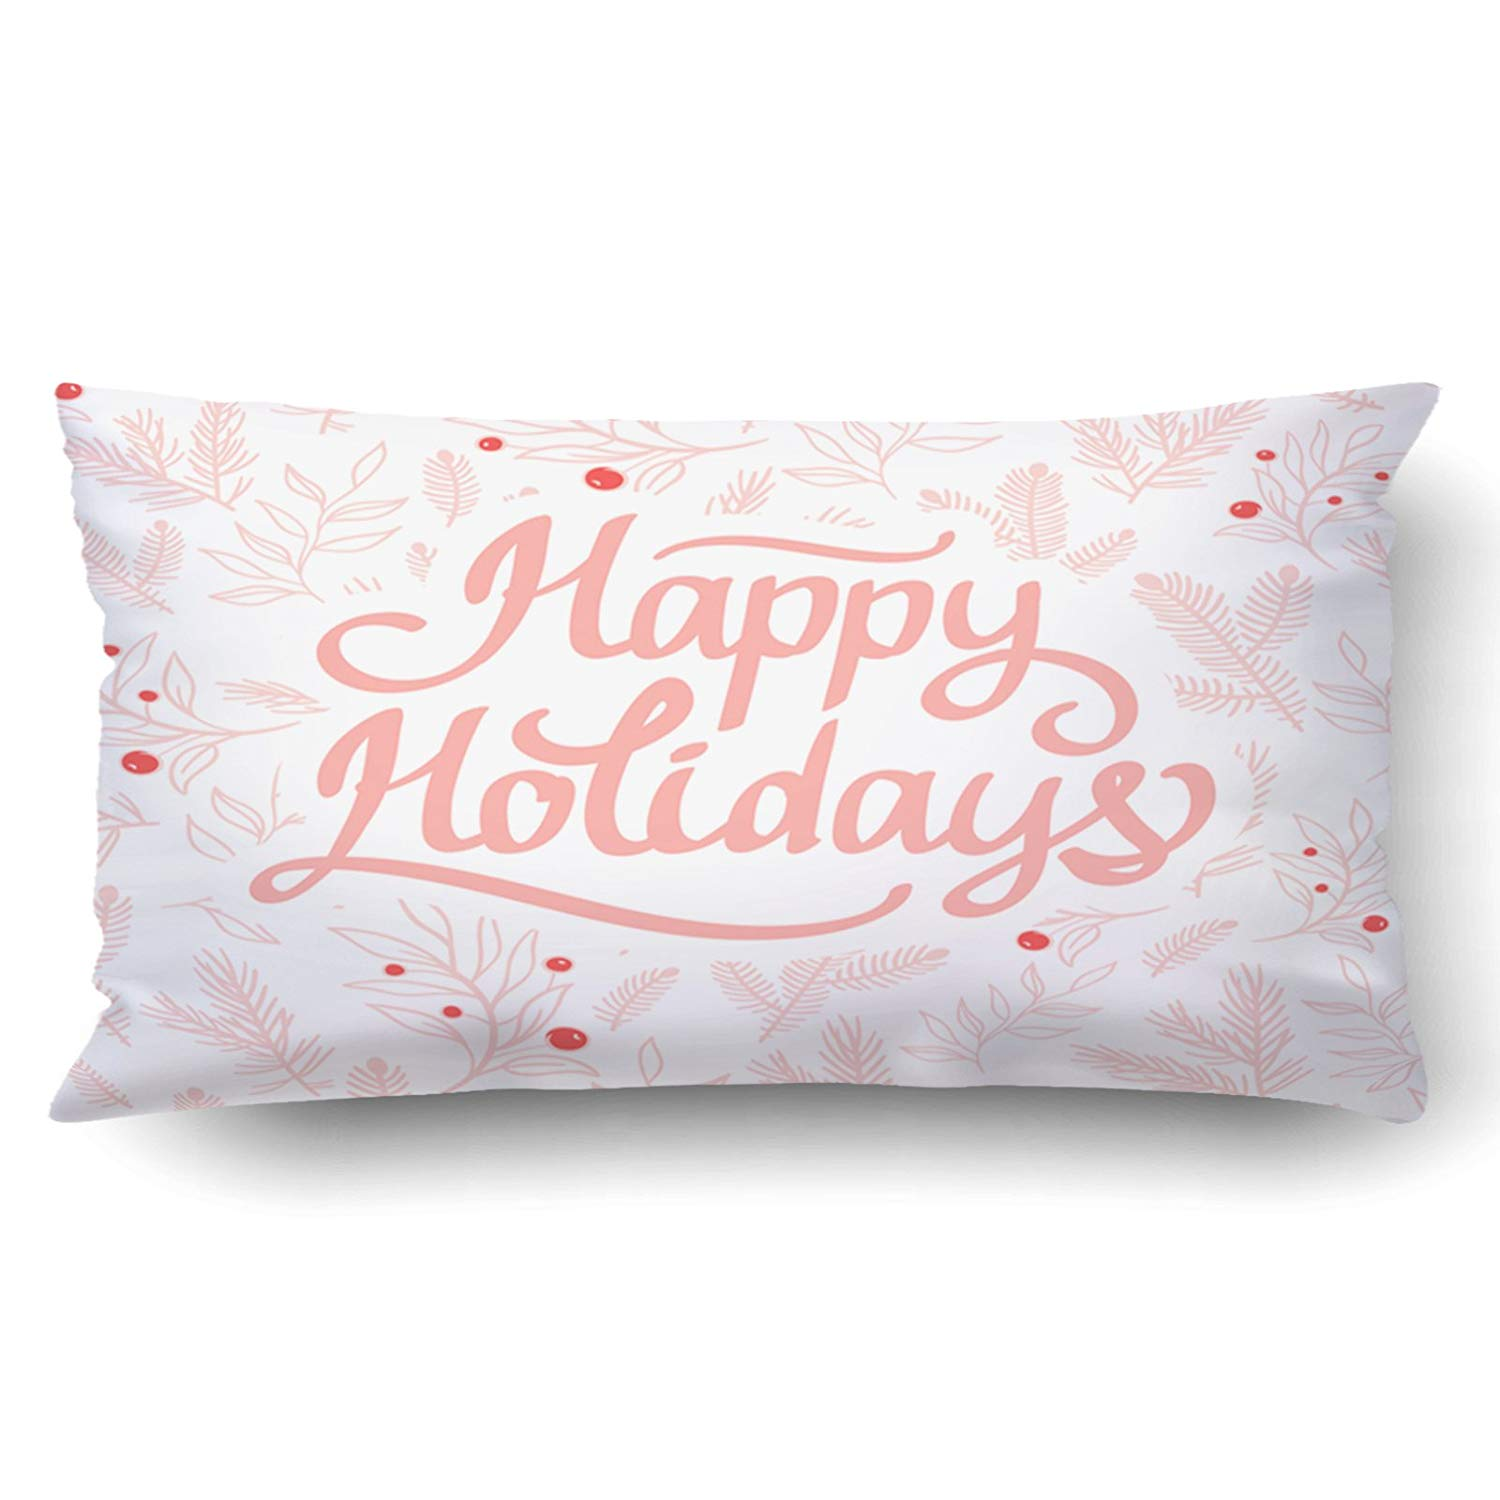 WOPOP Xmas Christmas Holiday Pattern Gentle Beautiful Rose Of Branches And Leaves Happy Holidays Pillow Case Cushion Cover Case Throw Pillow Case 20x30 inches